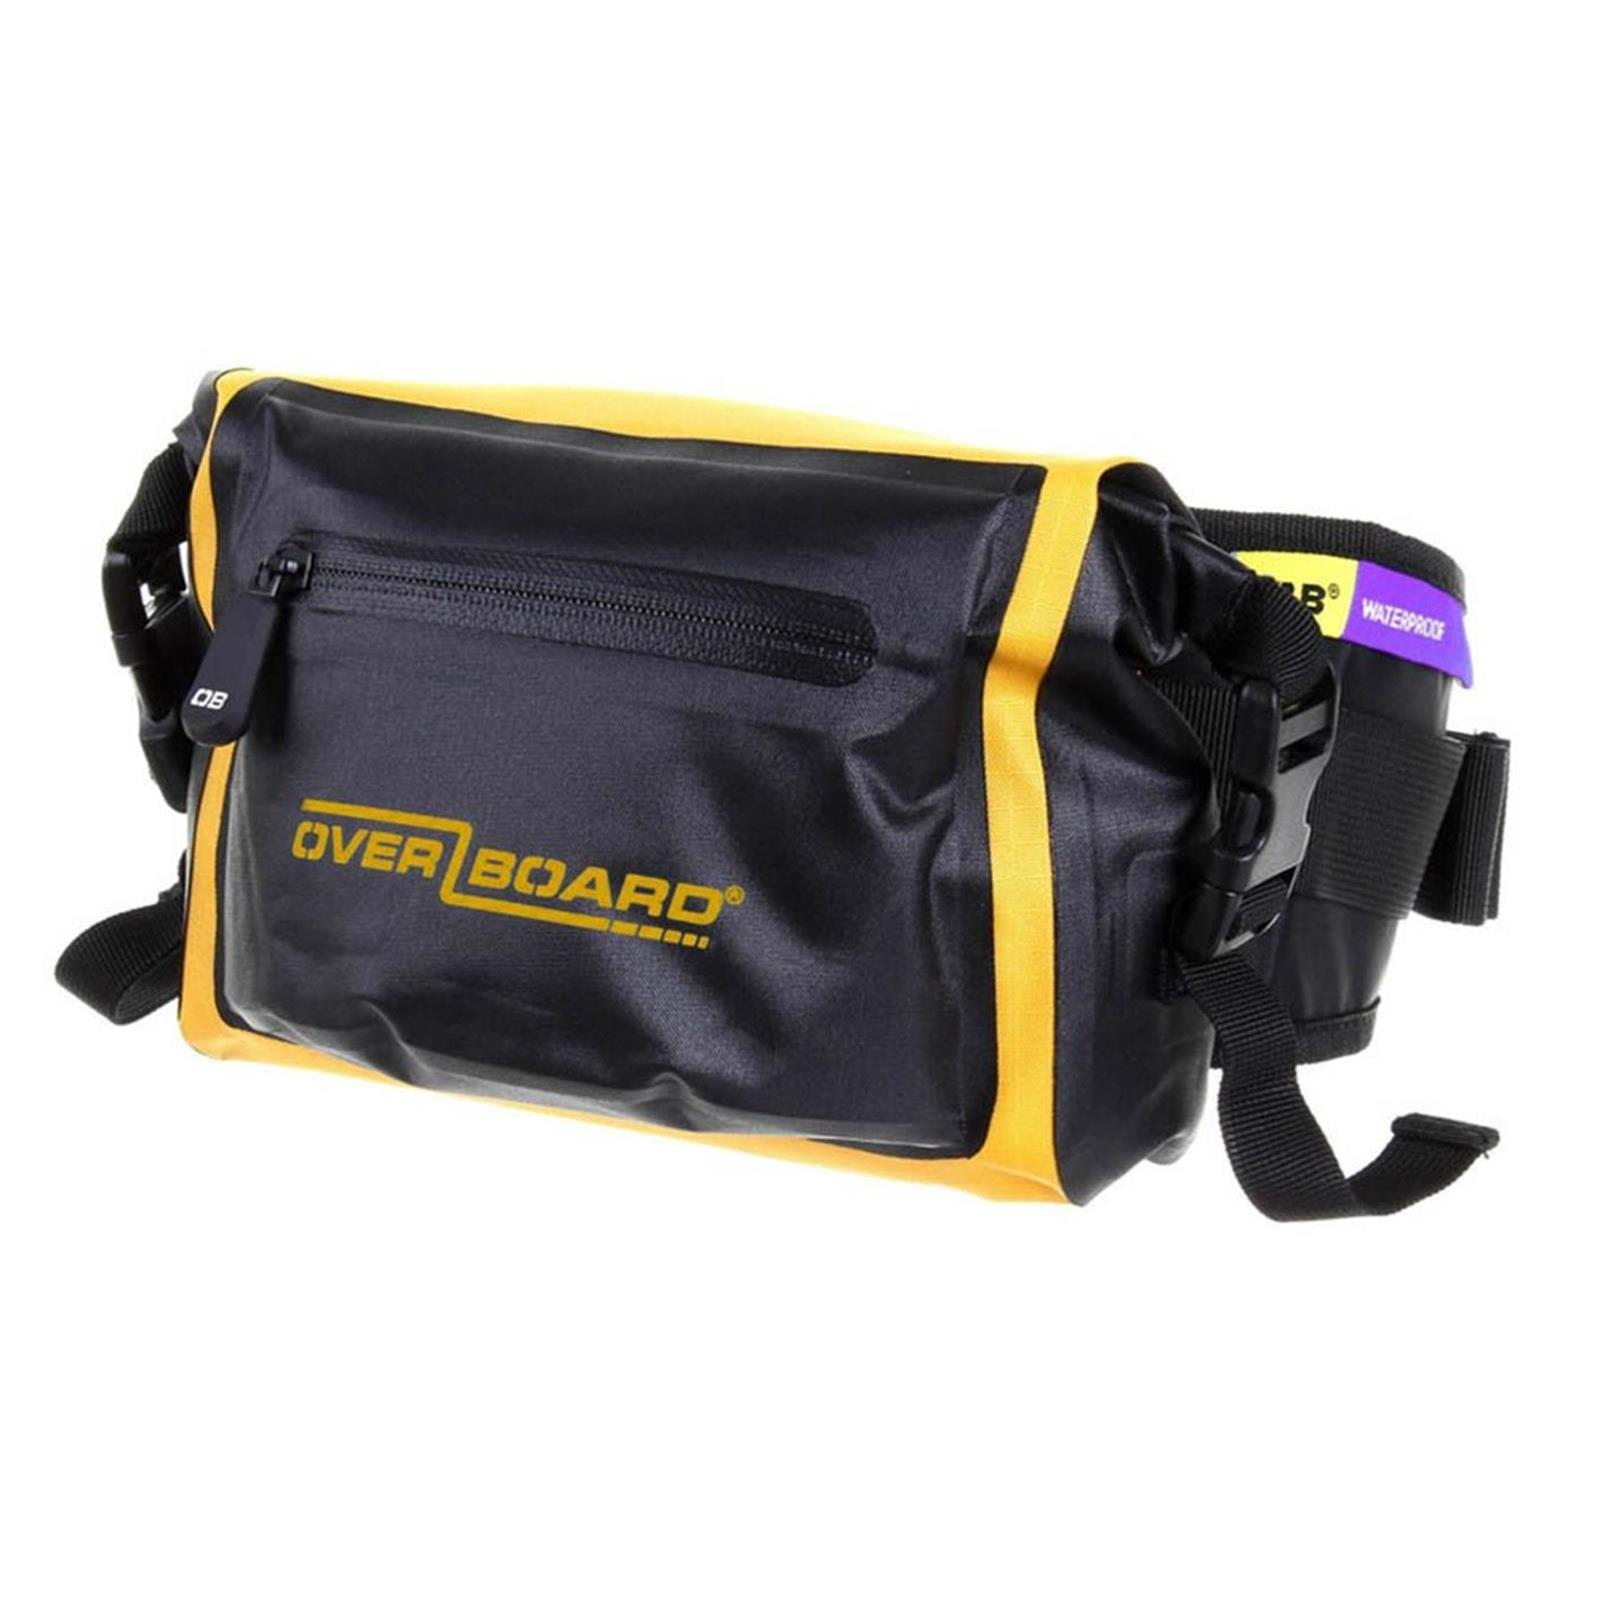 OverBoard wasserdichte Hüft Tasche LIGHT 2 L Gelb OB1049Y Pro-Light